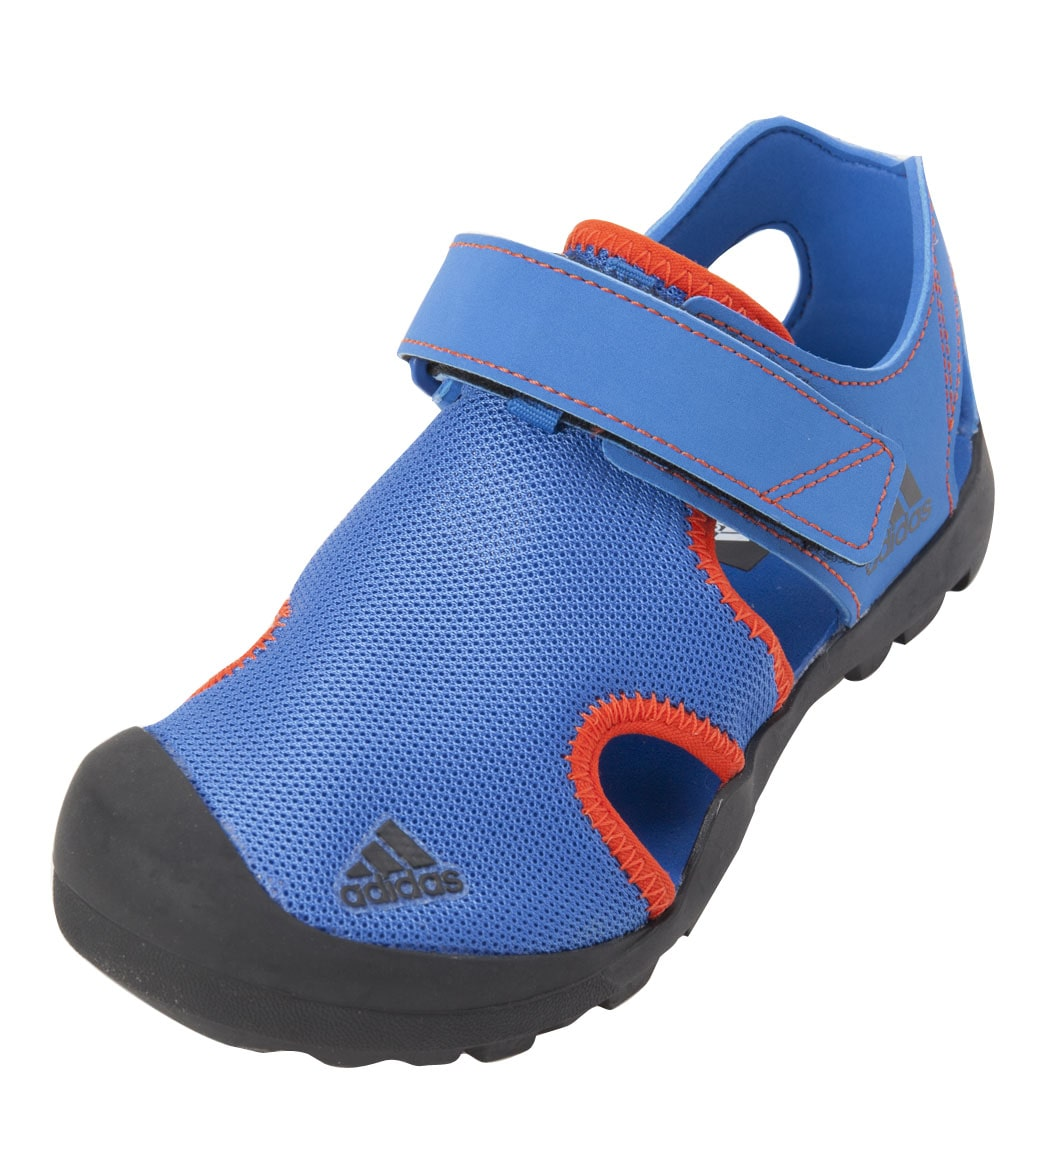 Adidas Kids' Captain Toey Water K Shoes at SwimOutlet.com - Free ...